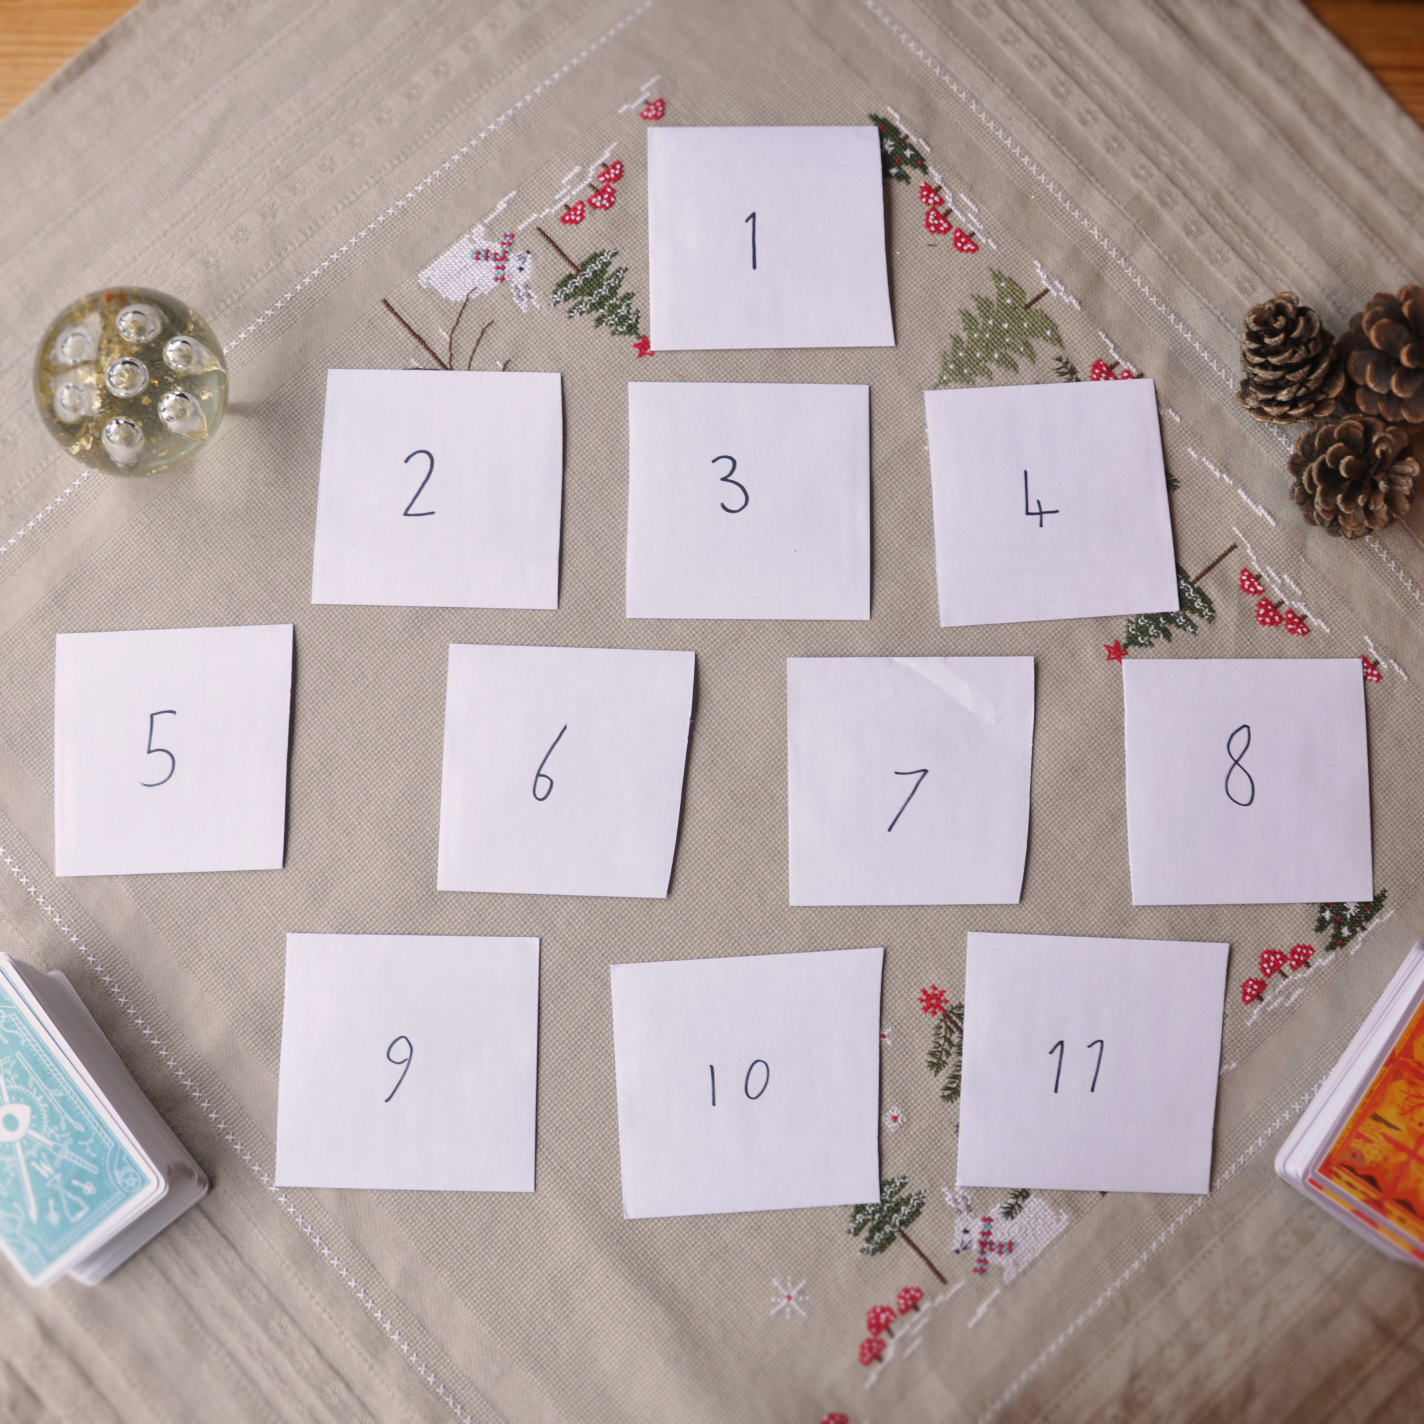 11 days of Yuletide tarot reading